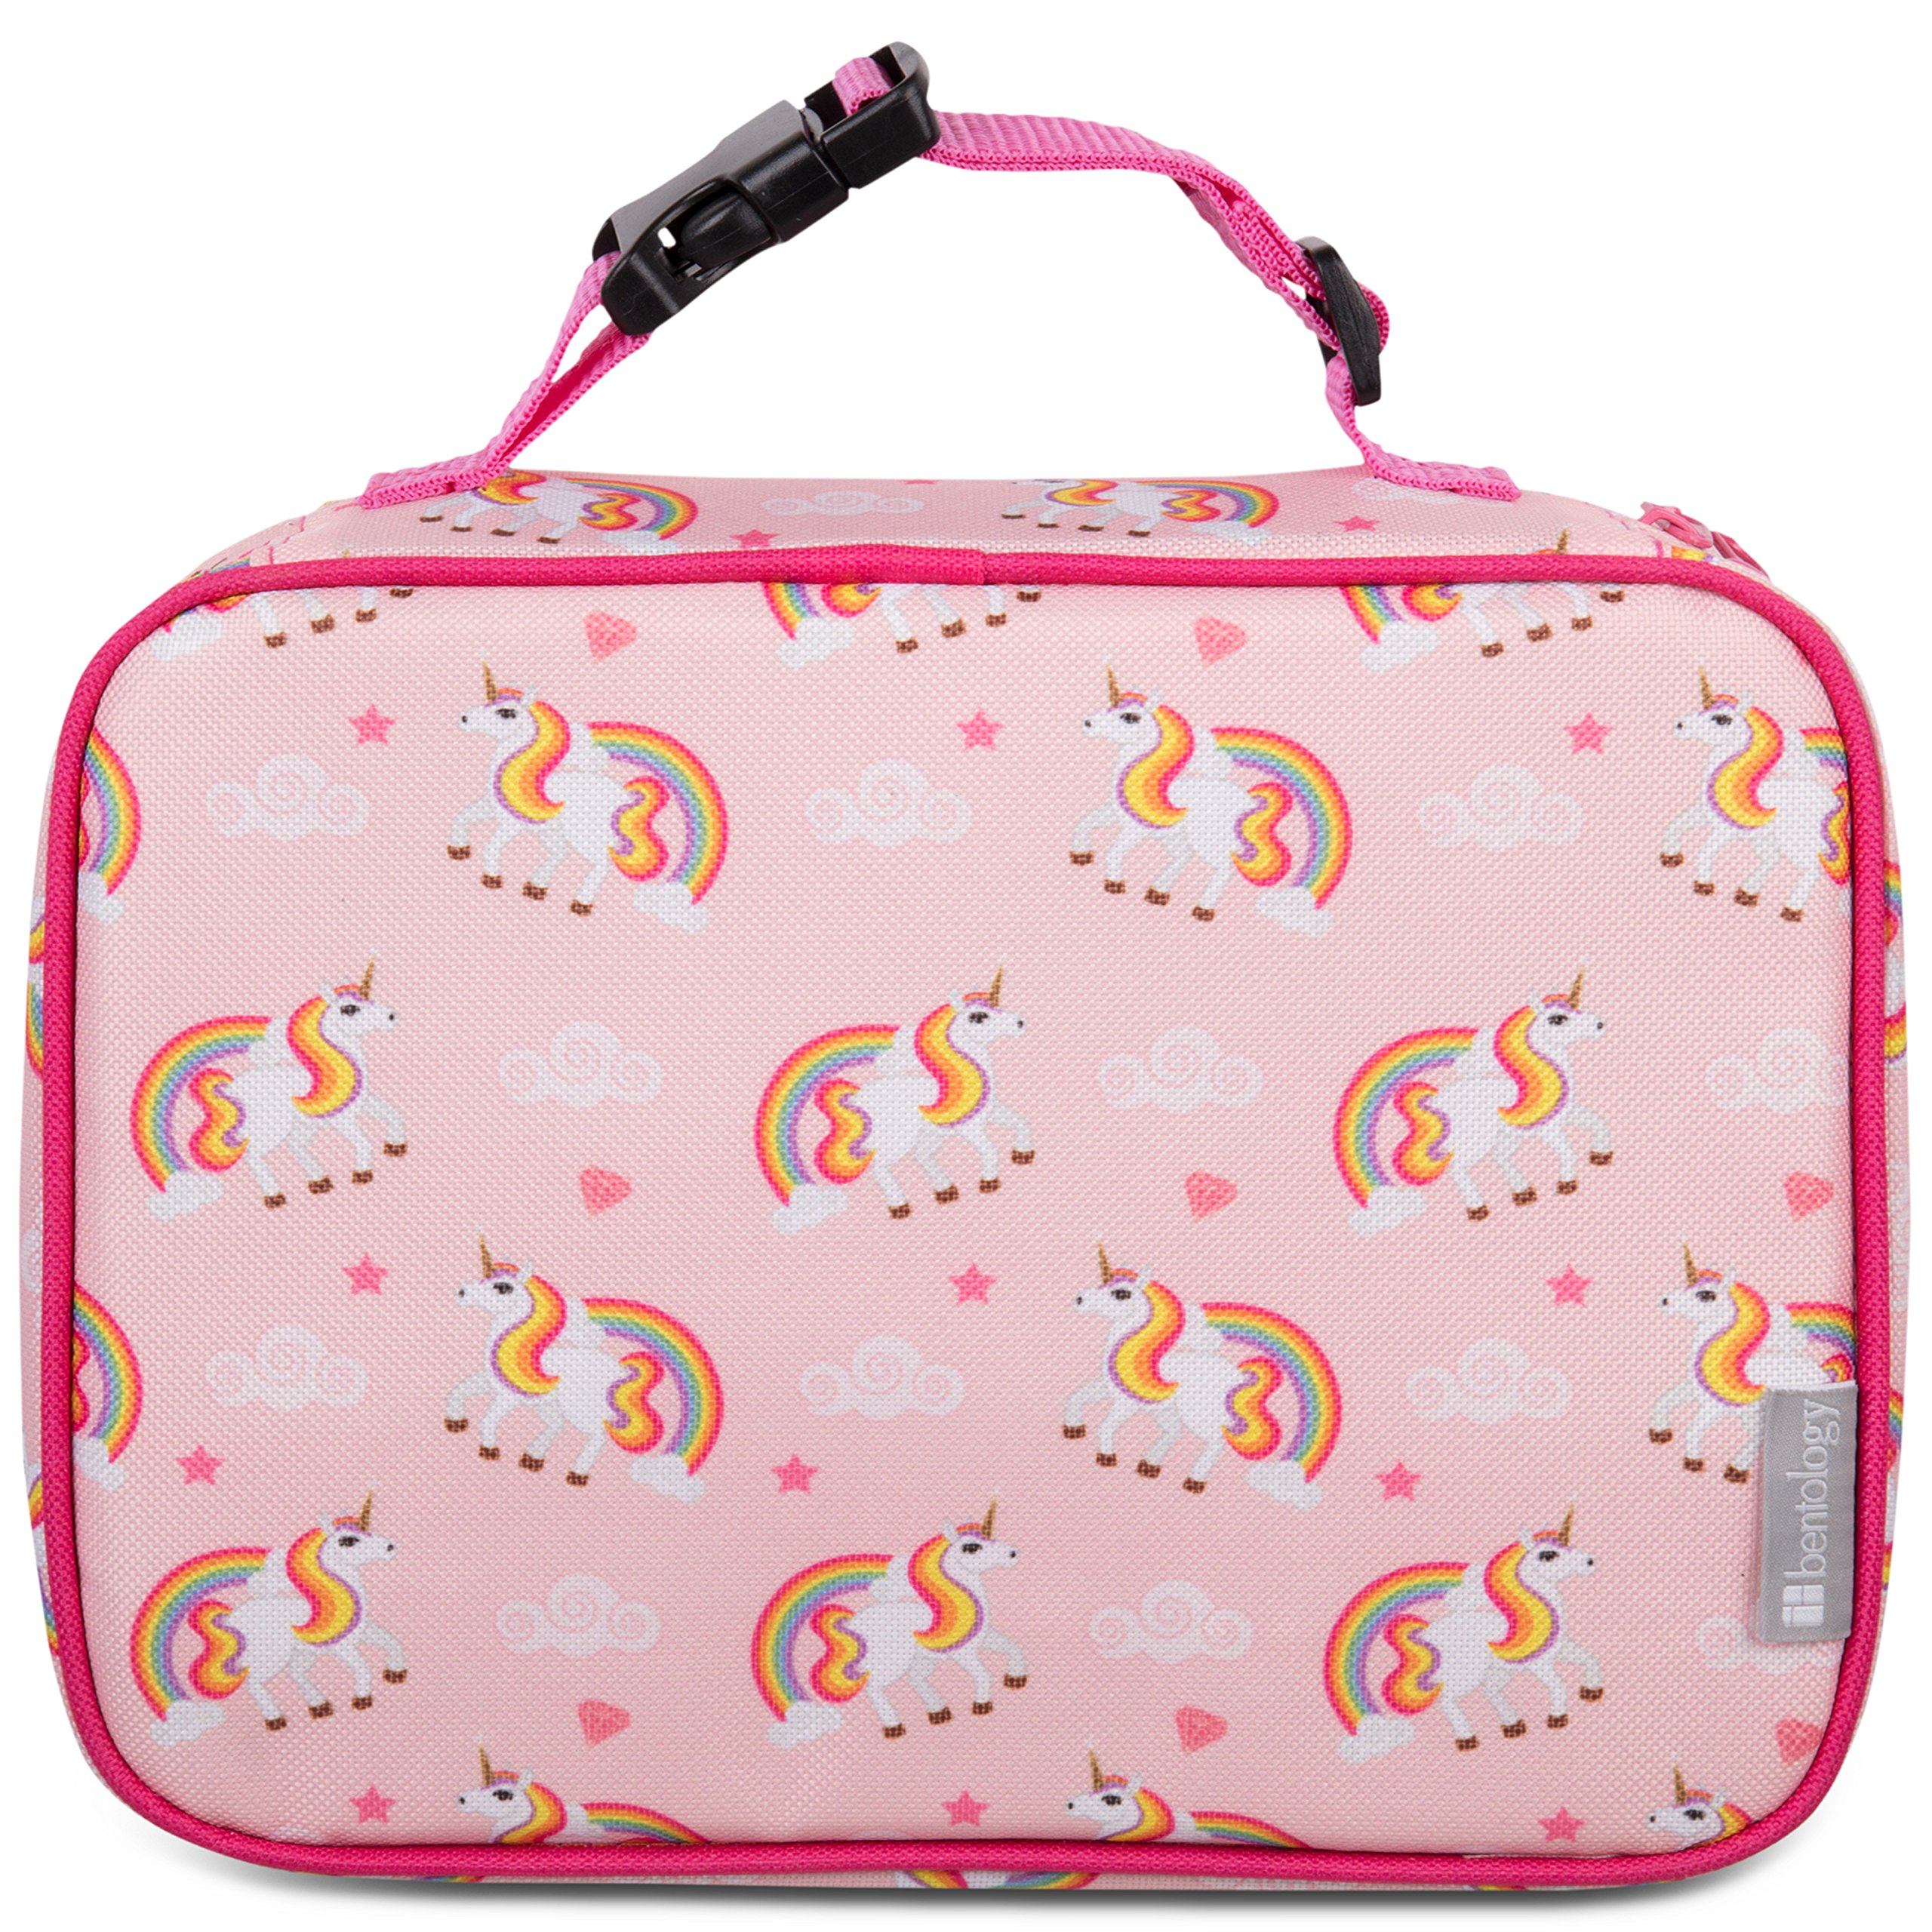 Insulated Lunch Box Sleeve - Securely Cover Your Bento Box (Unicorn)